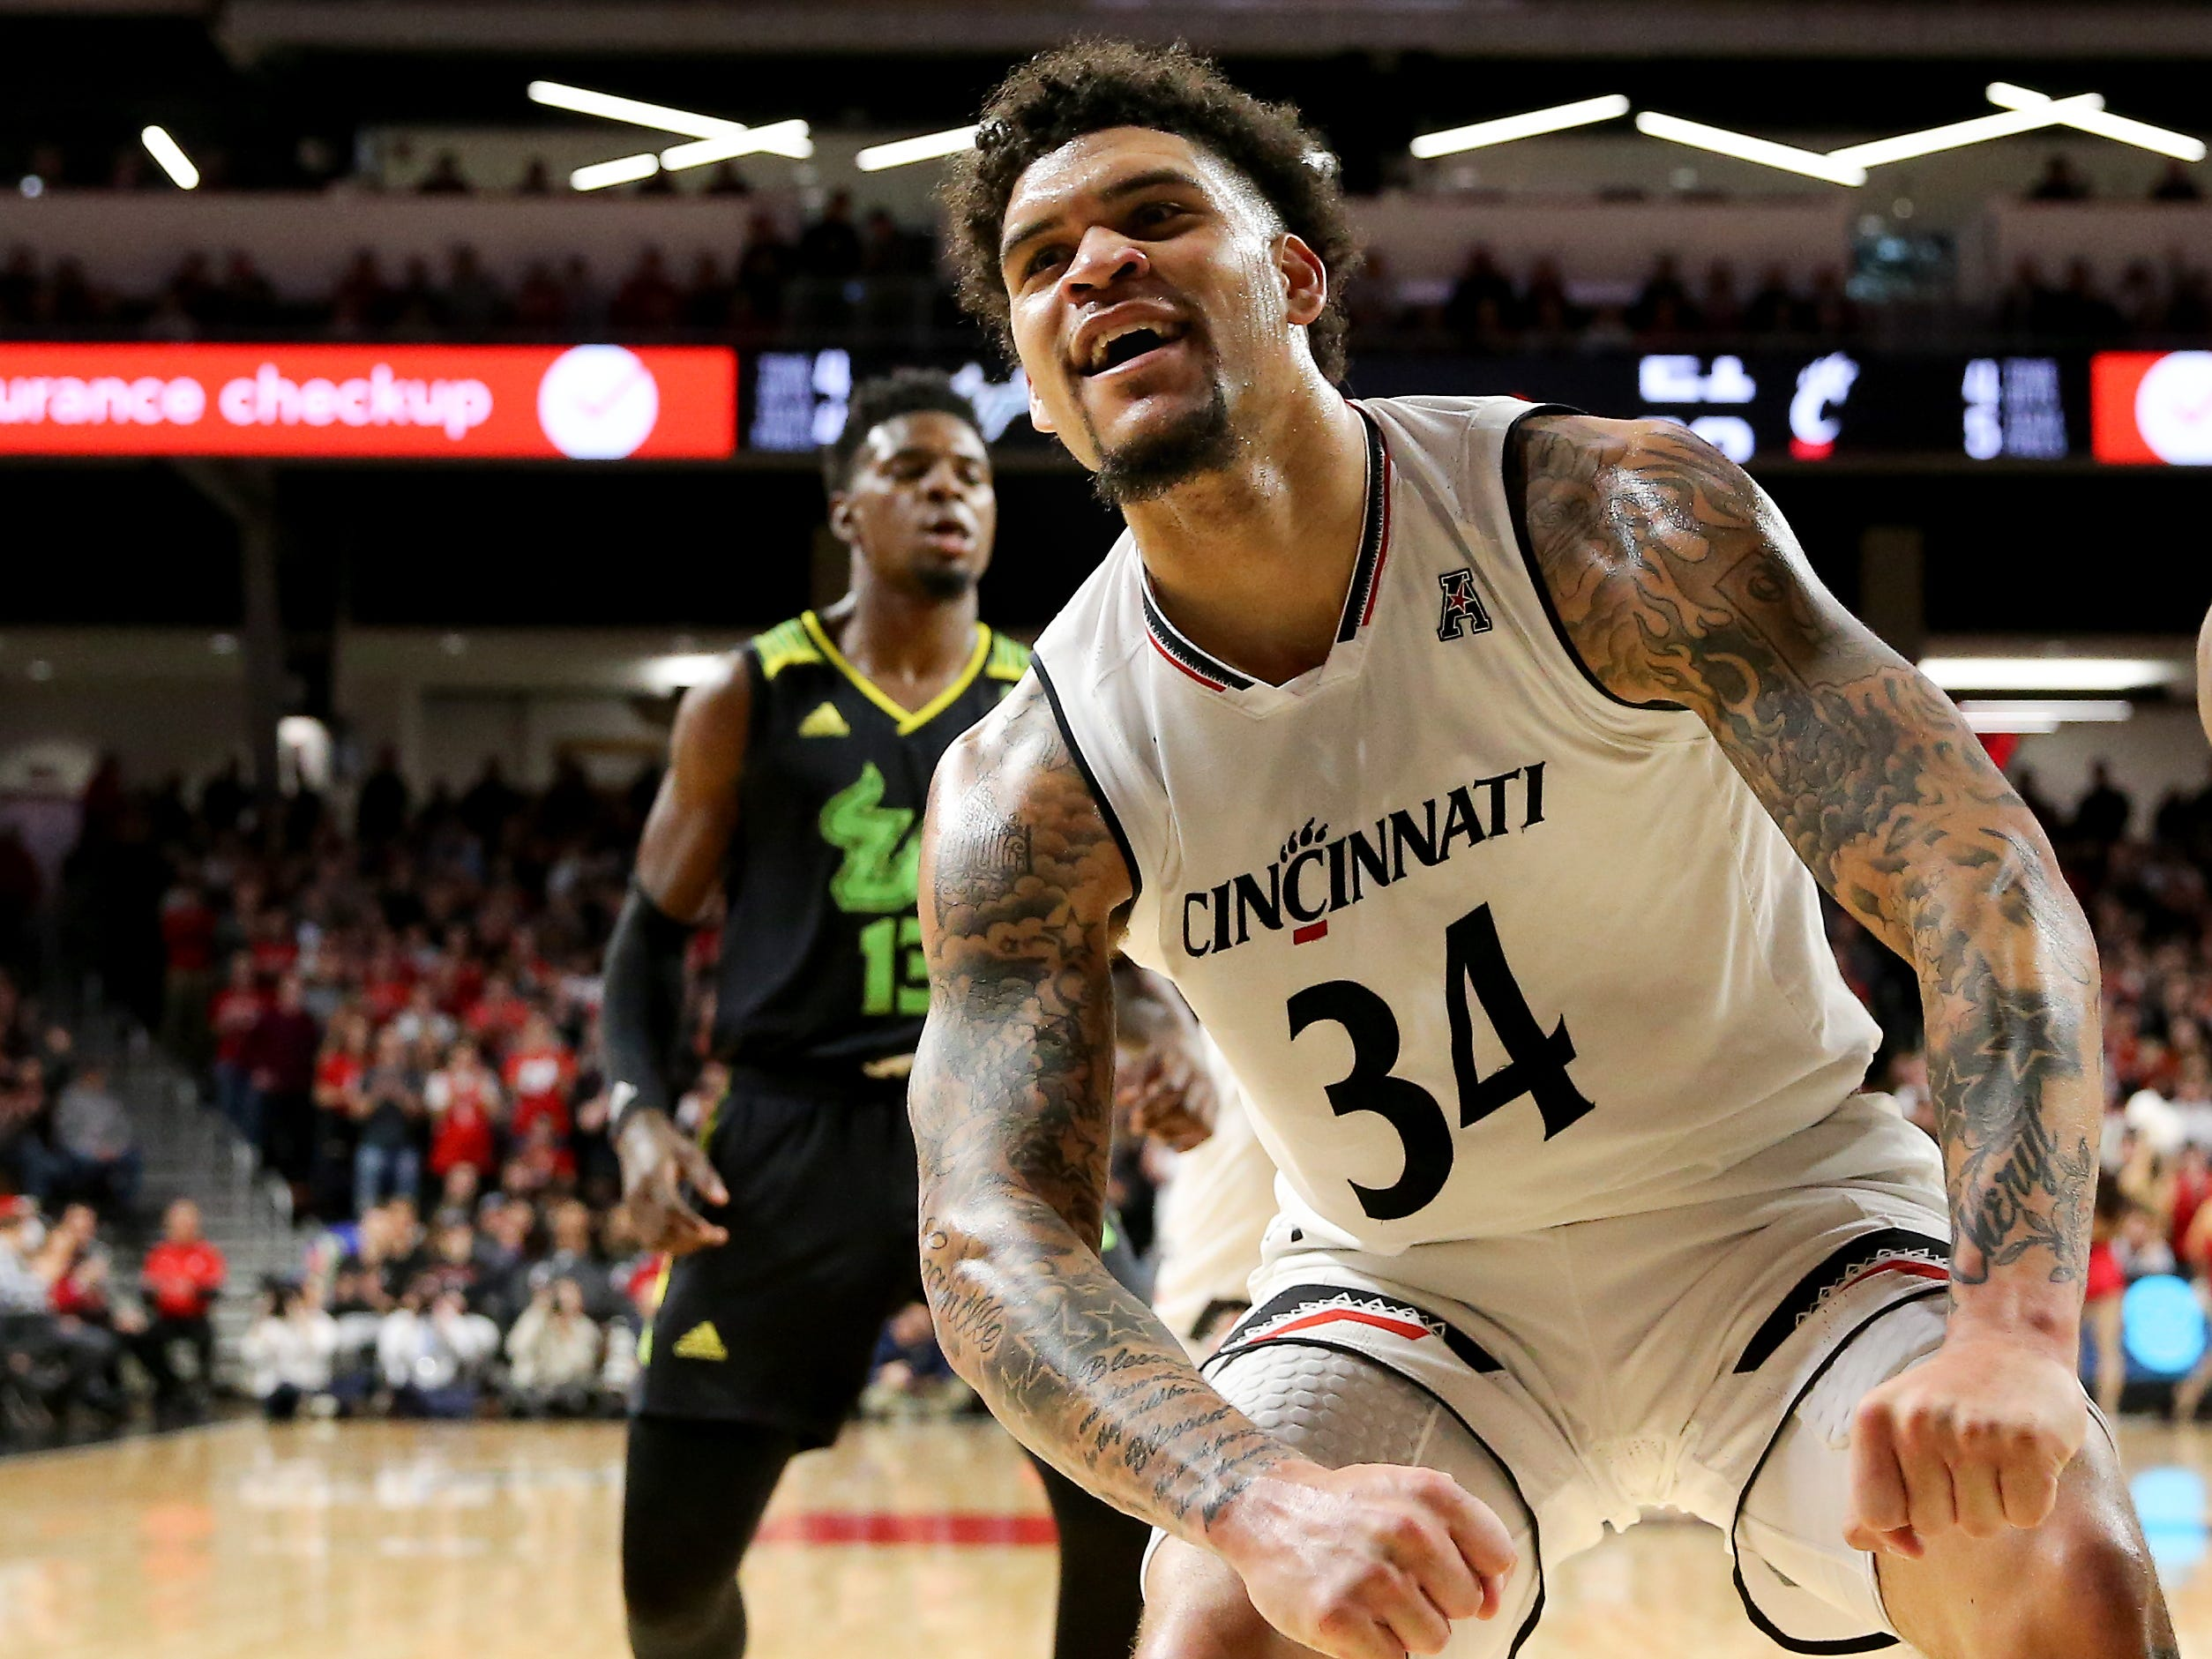 Cincinnati Bearcats guard Jarron Cumberland (34) reacts after a made basket in the first half of an NCAA college basketball game against the South Florida Bulls, Tuesday, Jan. 15, 2019, at Fifth Third Arena in Cincinnati.